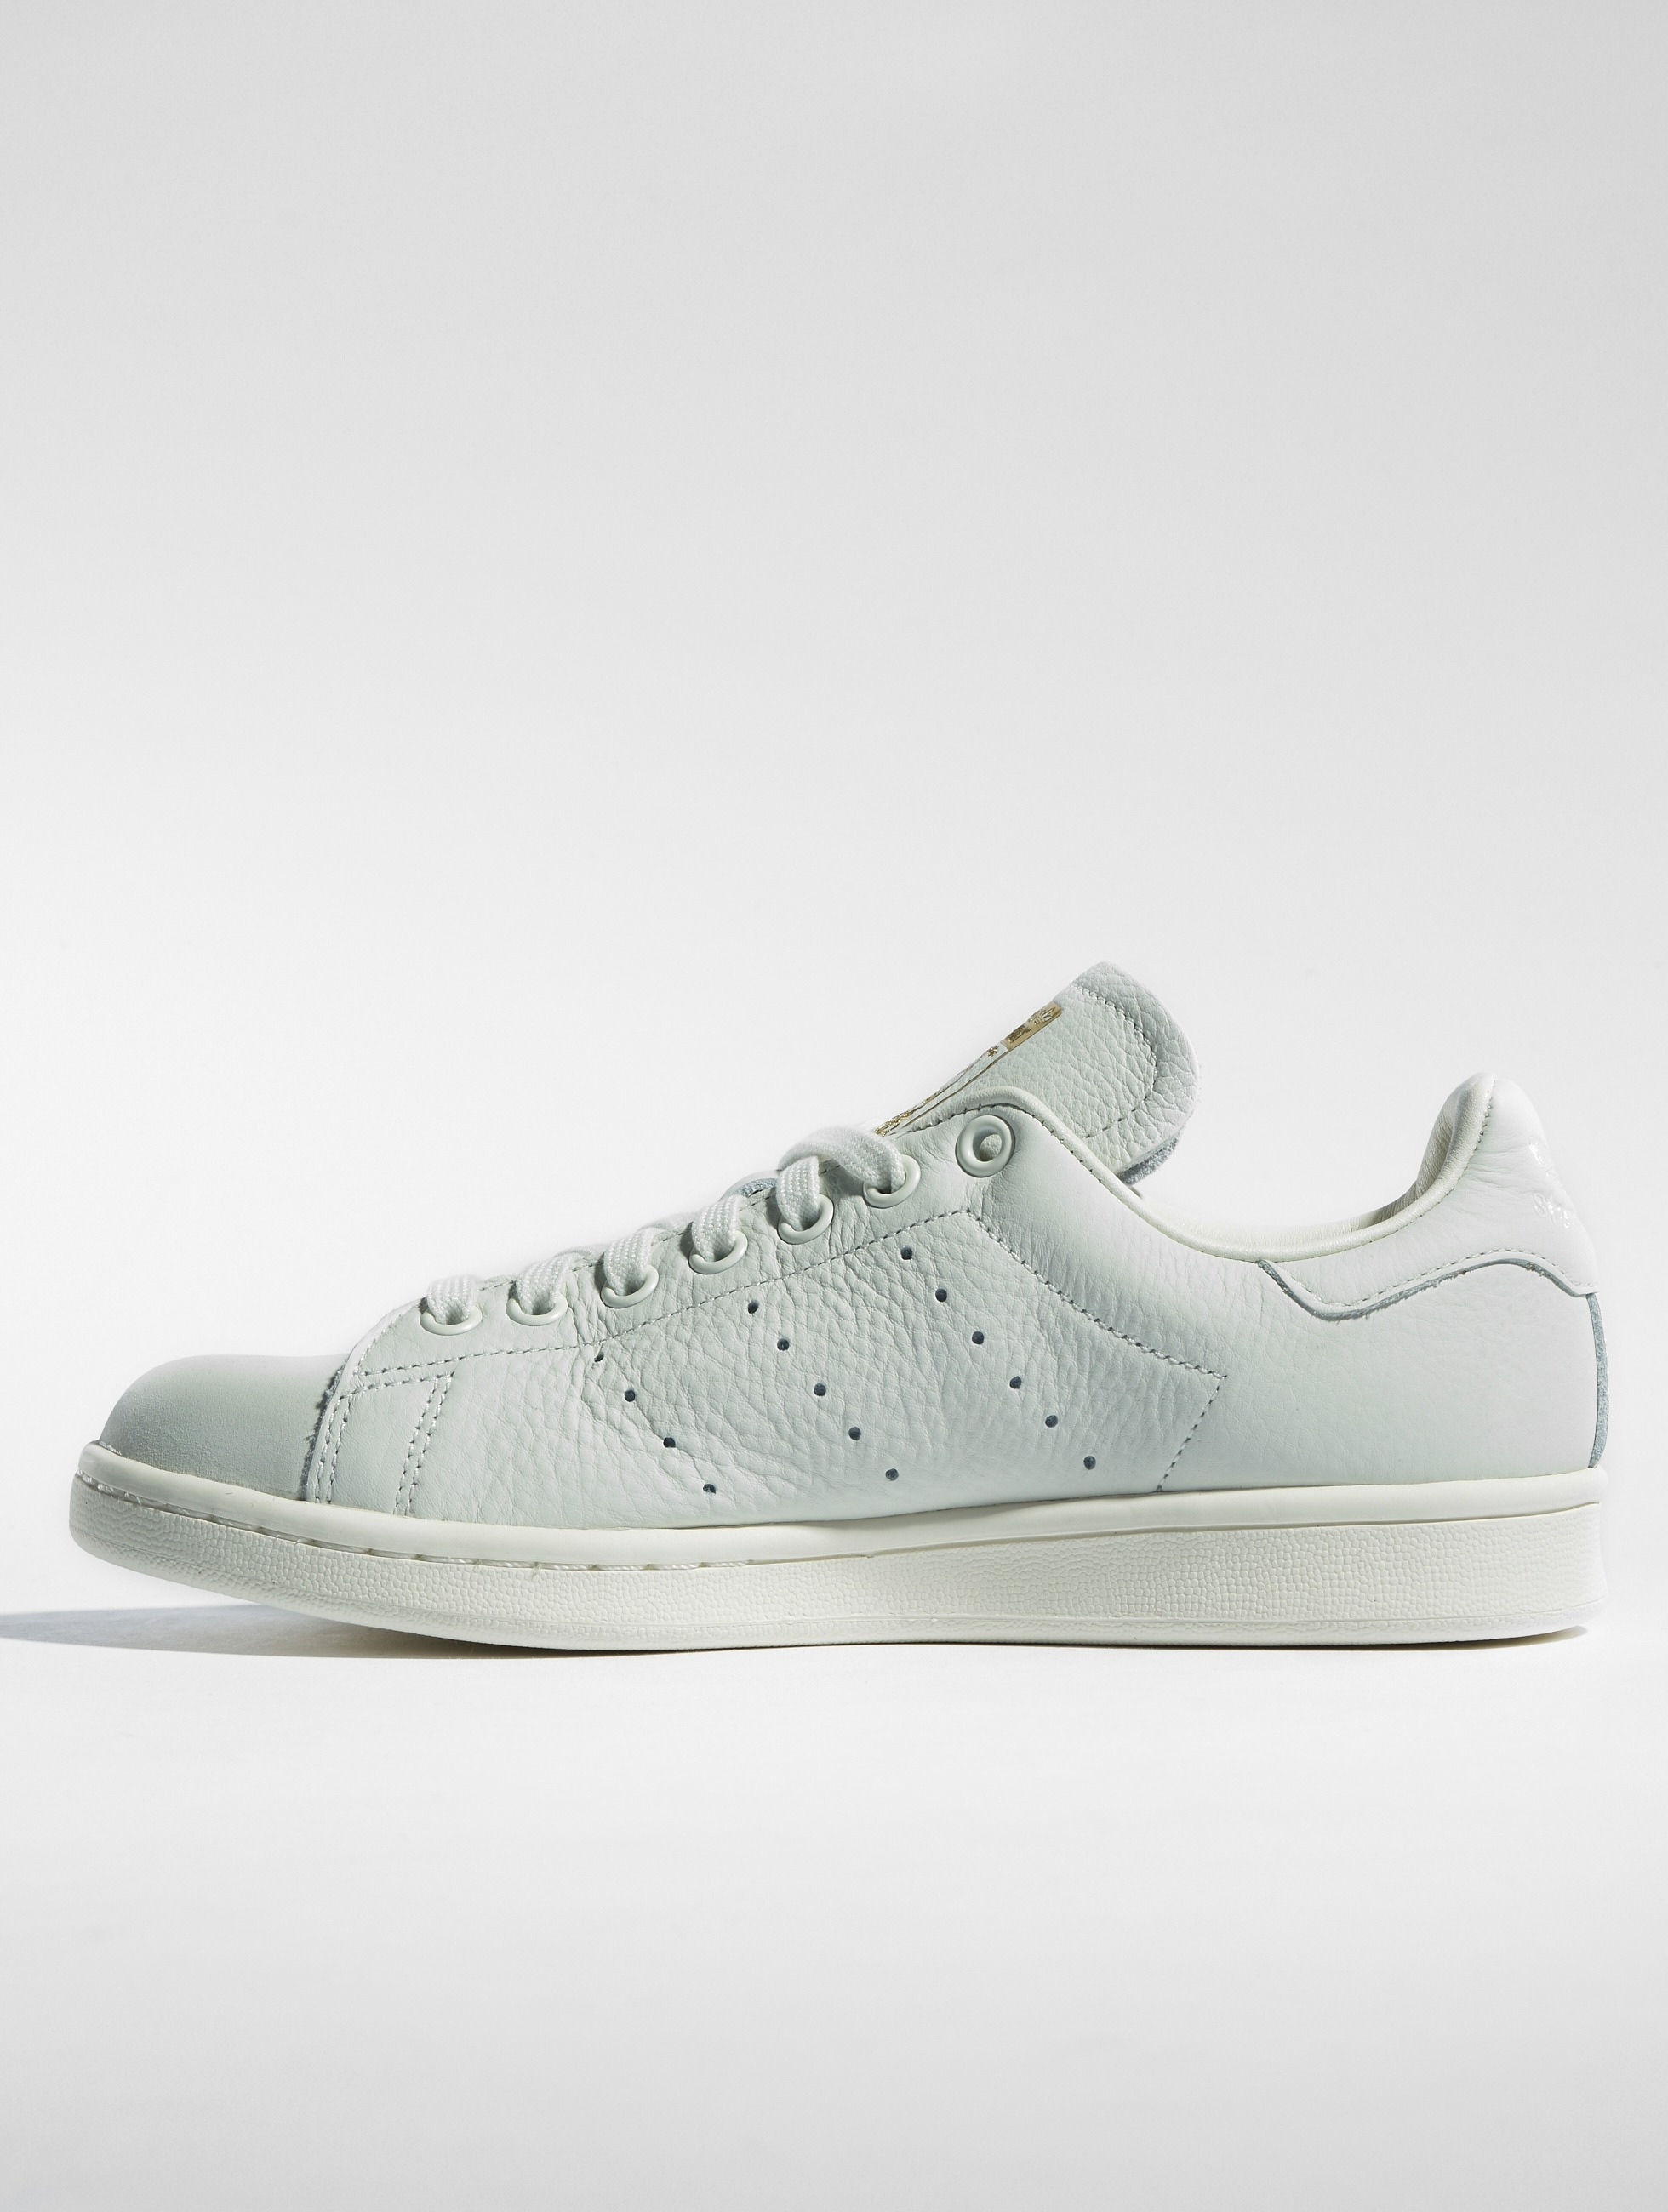 4401825d432 adidas originals schoen / sneaker Stan Smith Premium in wit 498419